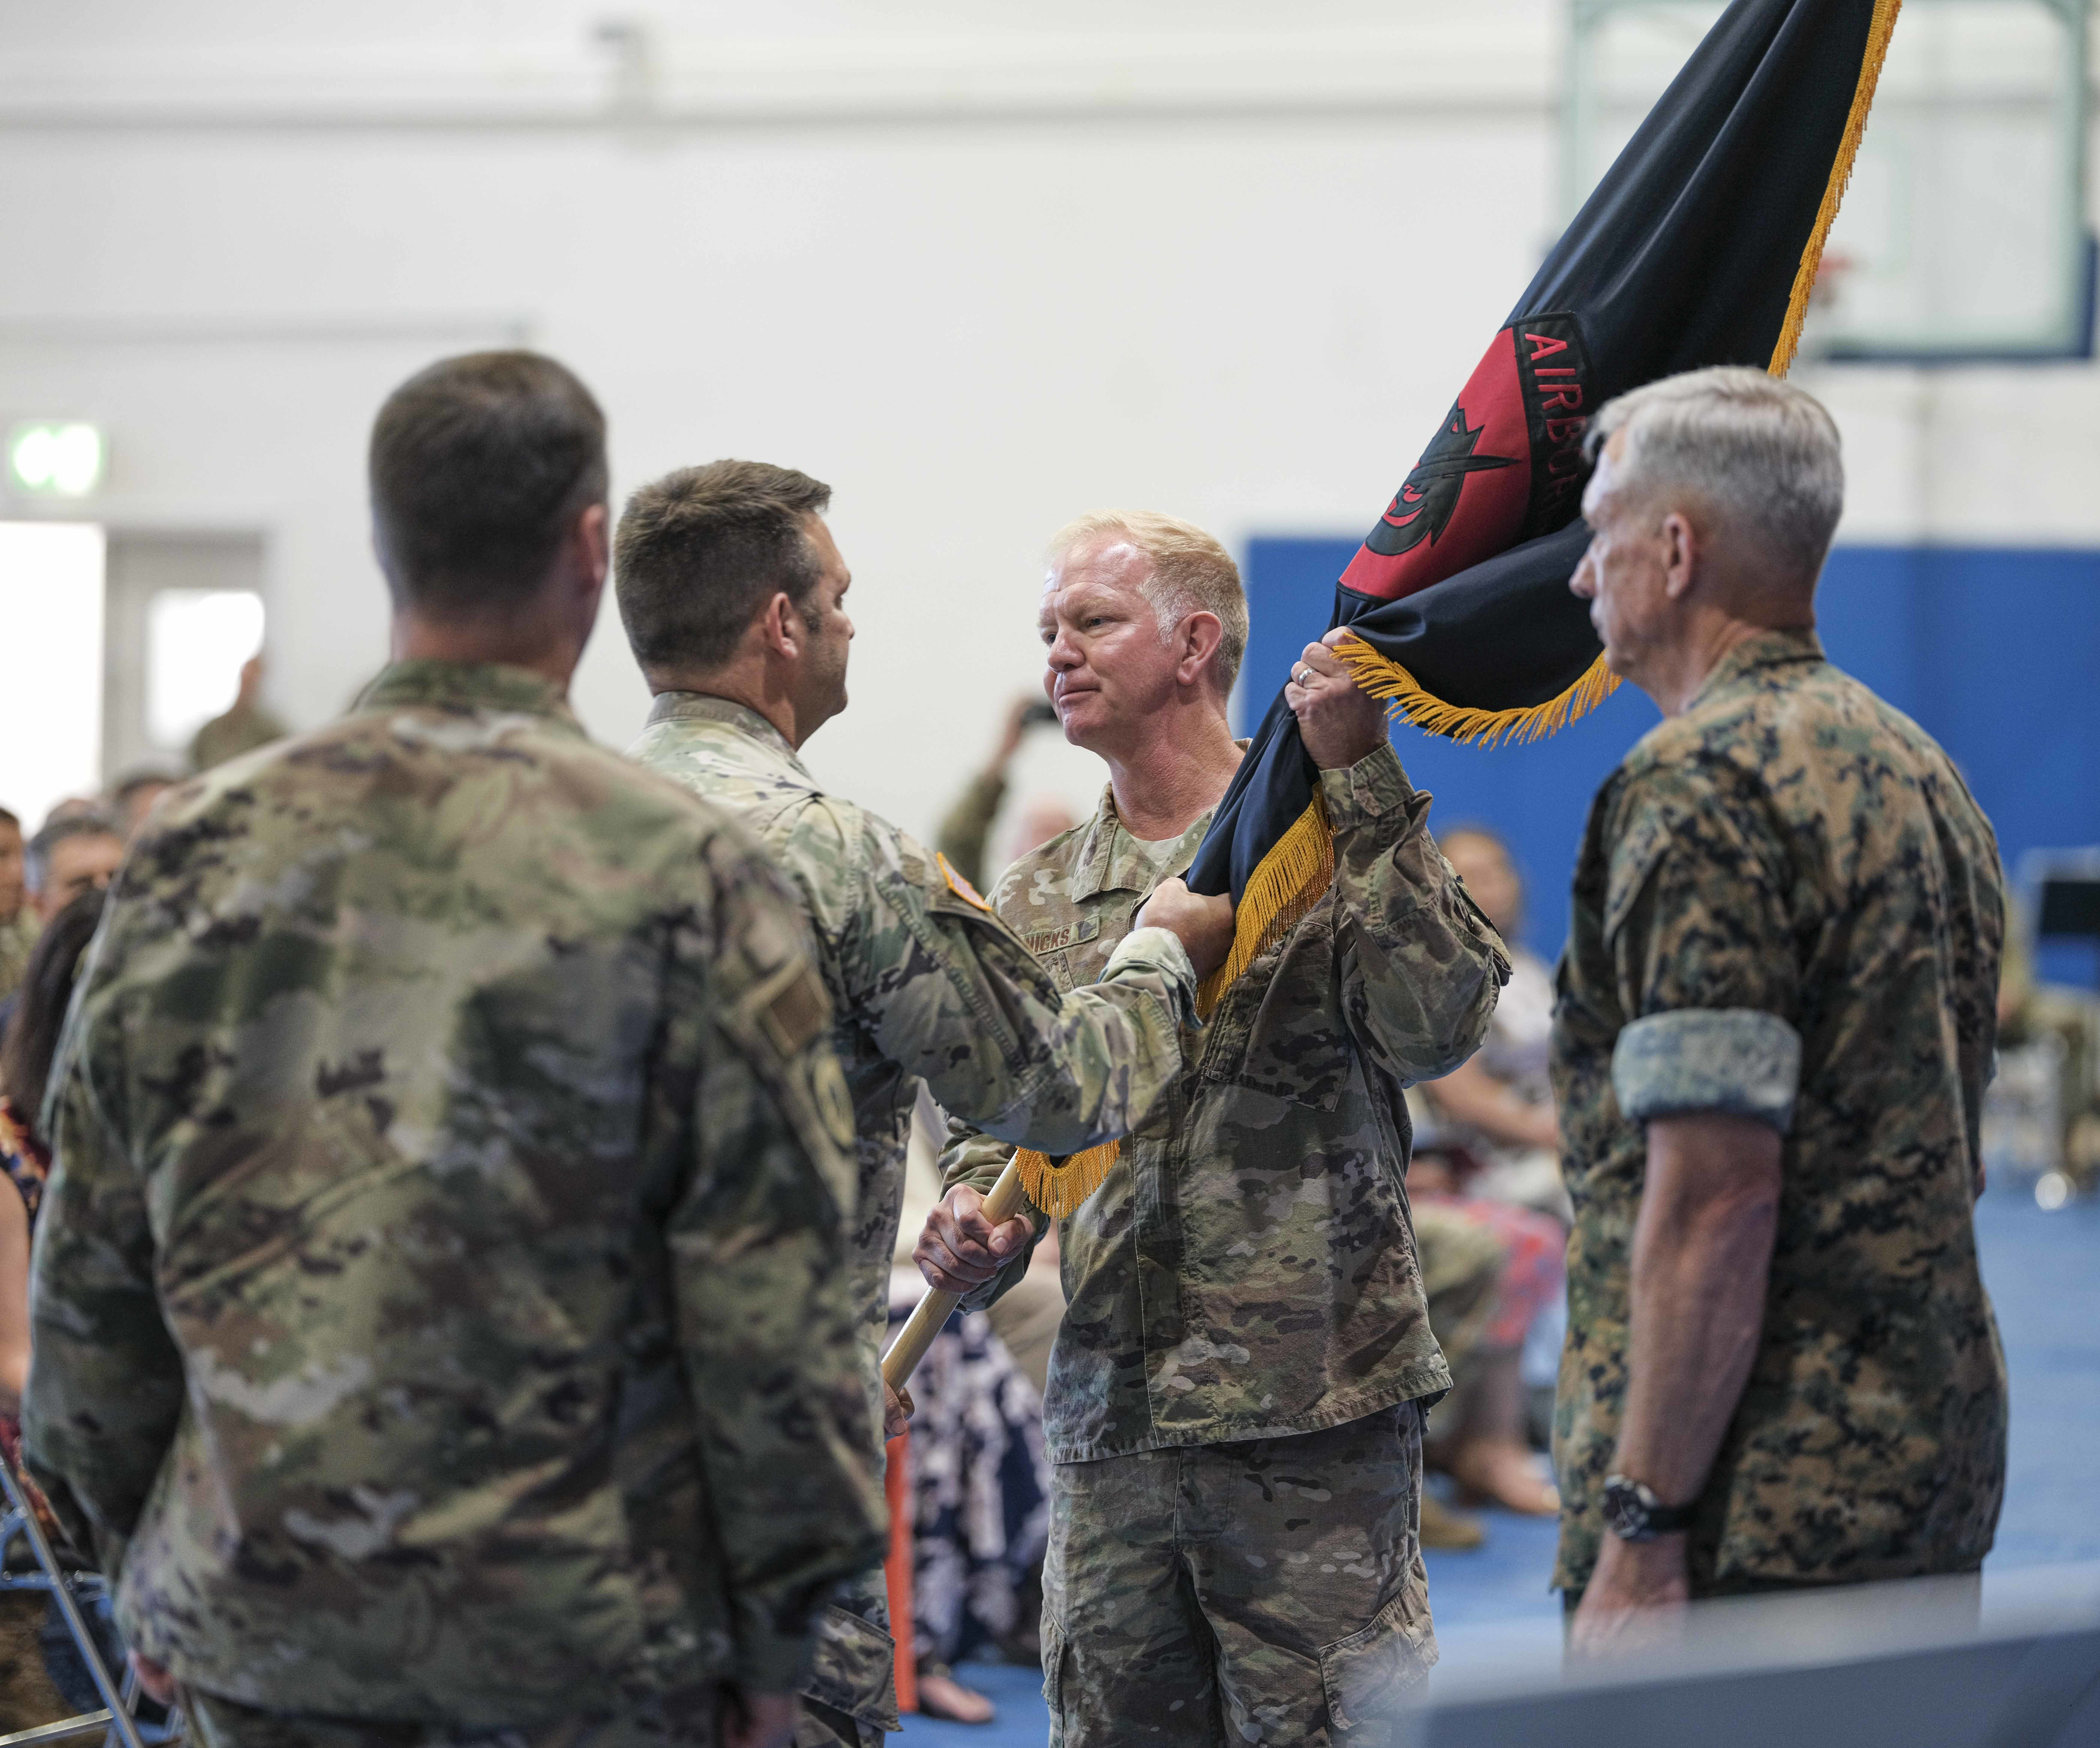 U.S. Air Force Maj. Gen. J. Marcus Hicks, outgoing commander of Special Operations Command Africa, hands the SOCAFRICA guidon to Command Sgt. Maj. Lyle H. Marsh during a change of command ceremony for SOCAFRICA at Kelley Barracks, Stuttgart, Germany, June 28, 2019. Special Operations Command Africa supports U.S. Africa Command by counter violent extremist organizations, building the military capacity of key partners in Africa and protecting U.S. personnel and facilities. (U.S. Army photo by Sgt. 1st Class Daniel Love/Released)